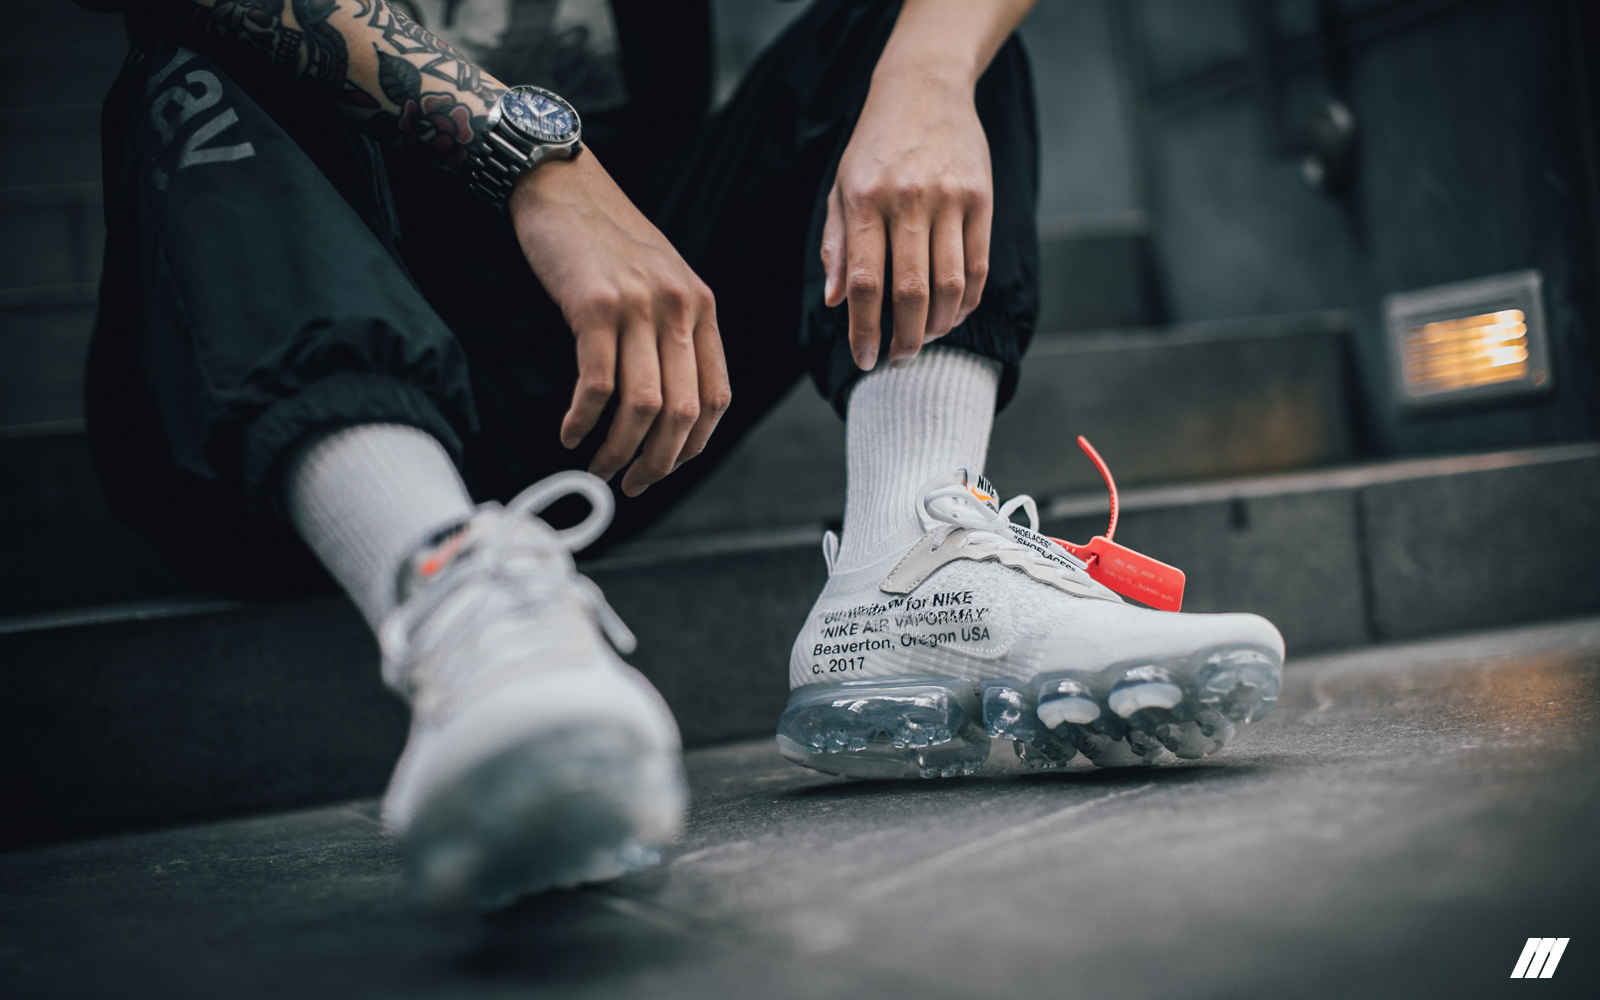 f38a98aa9 ... Unboxed Episode 17 Virgil Abloh x Nike Air Vapormax White The